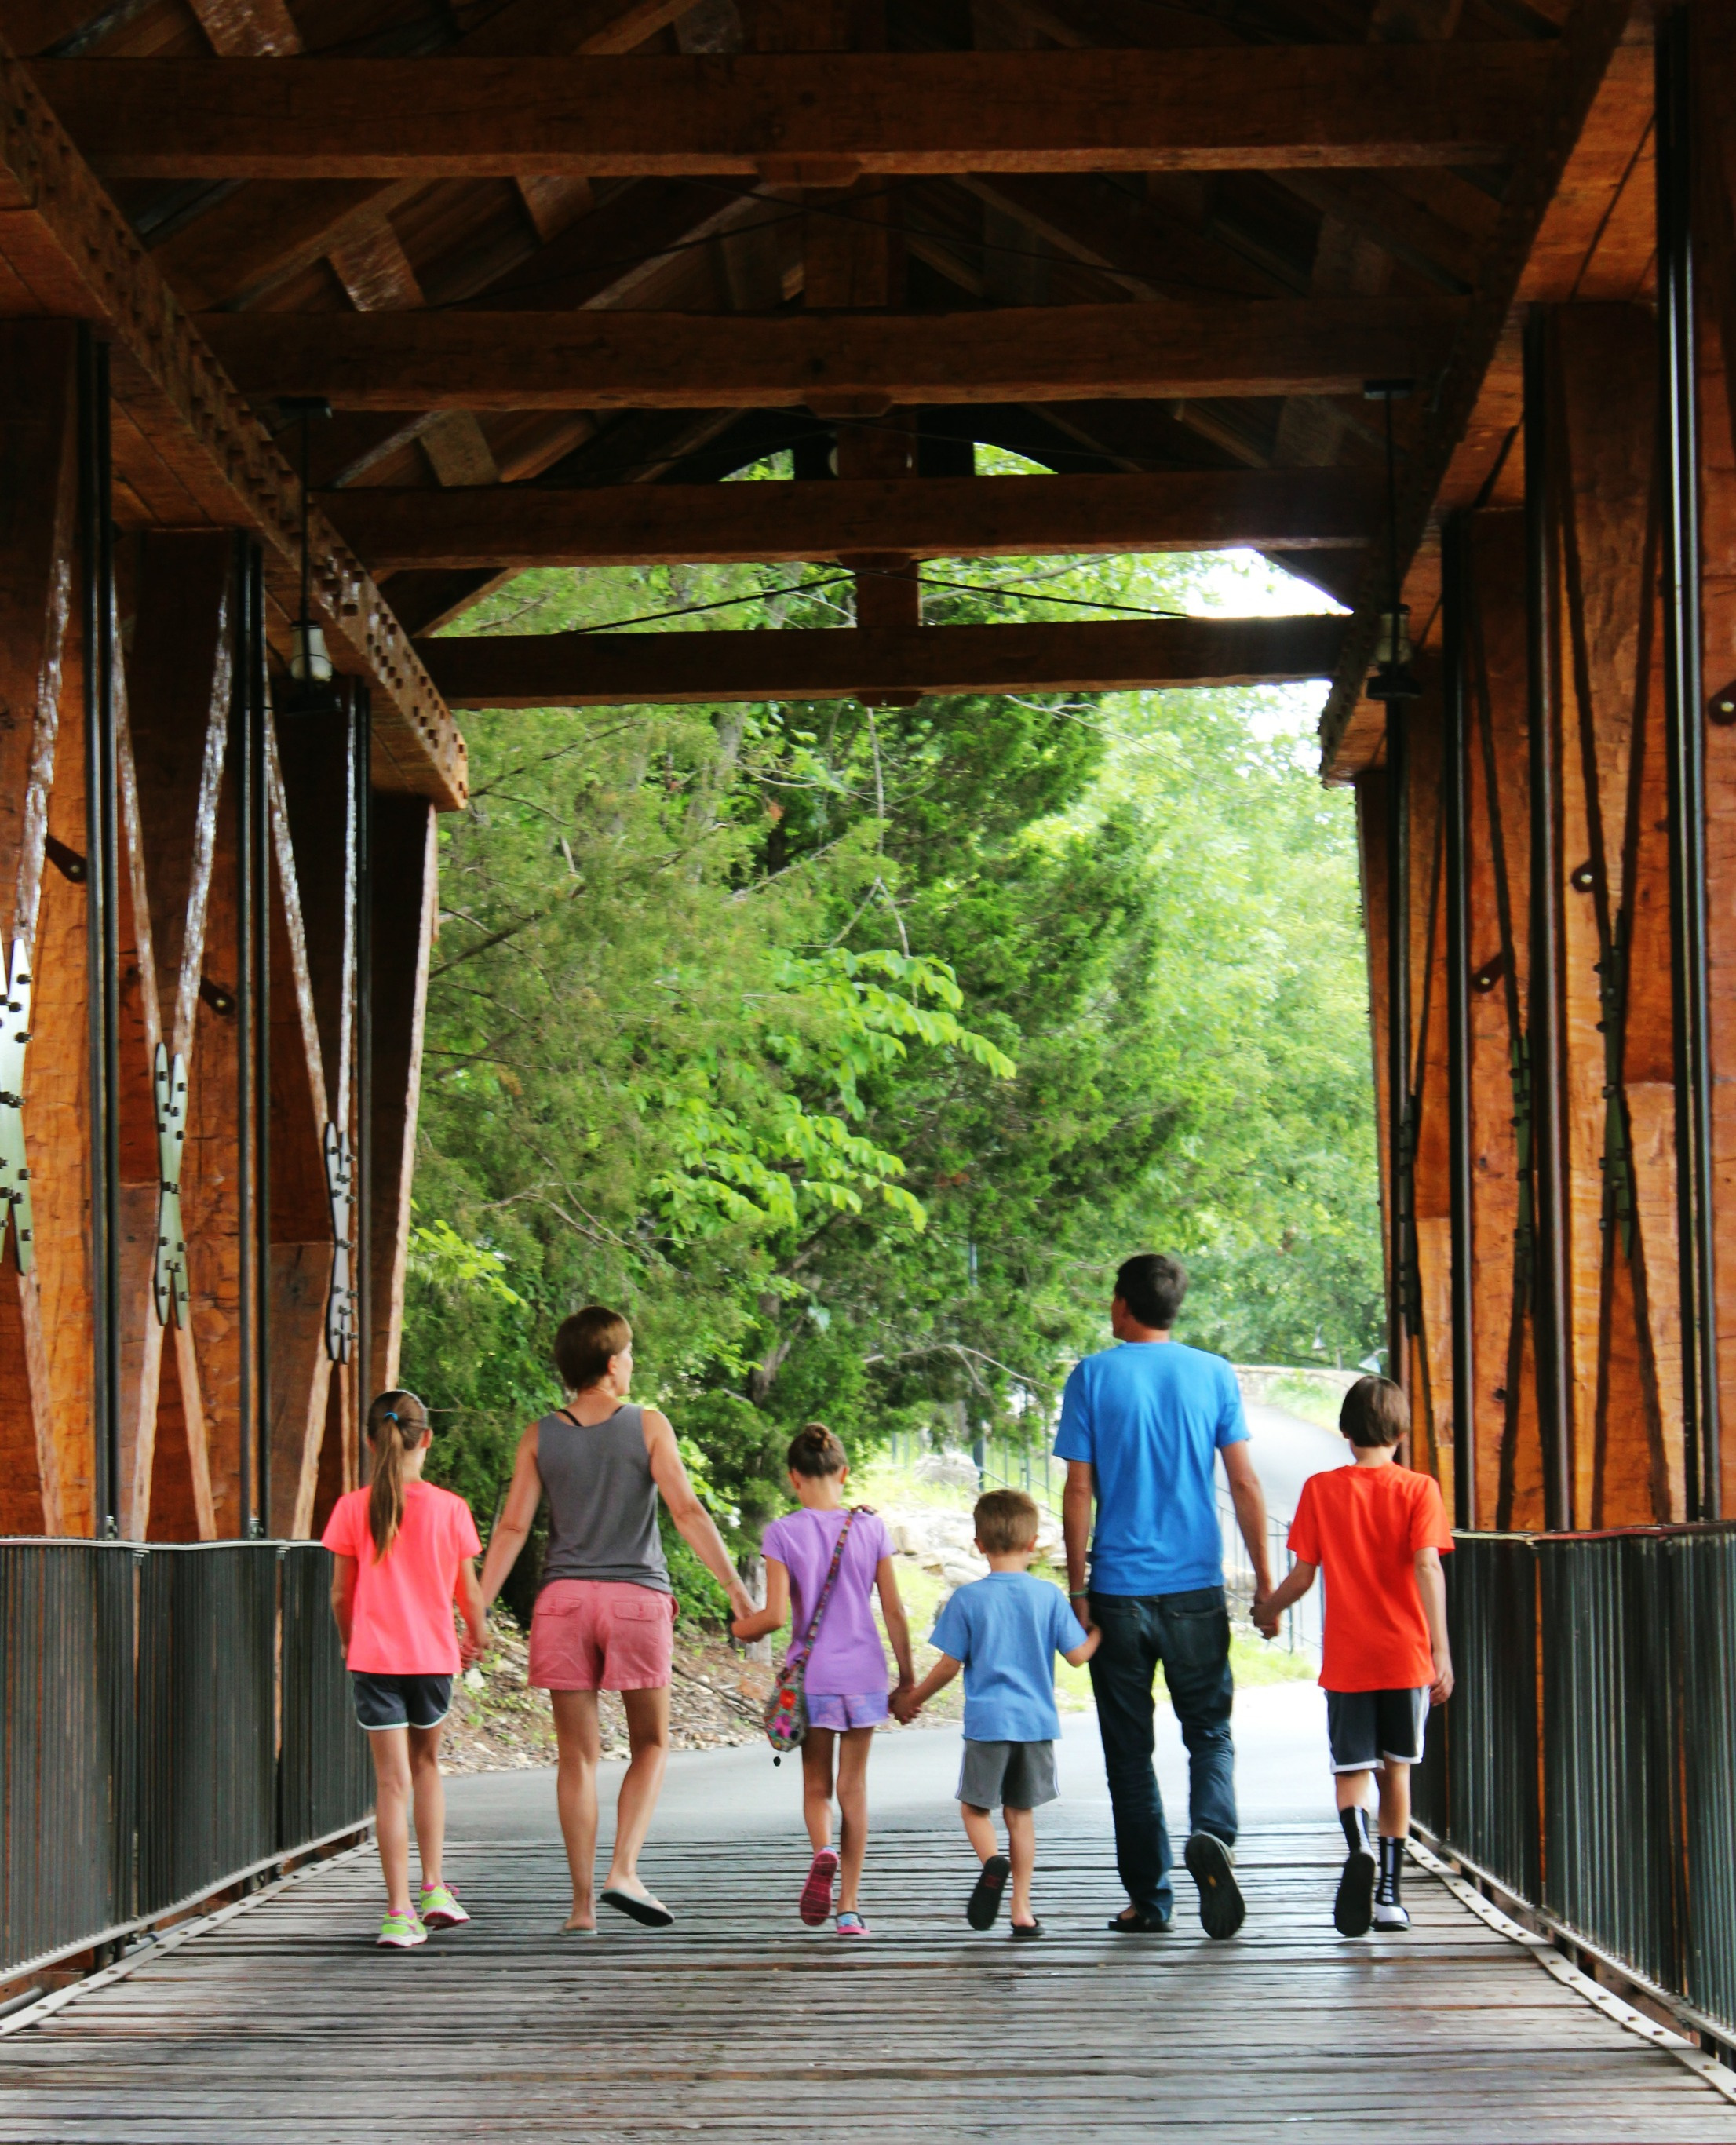 big-cedar-amish-bridge-devils-pool-family-vacation